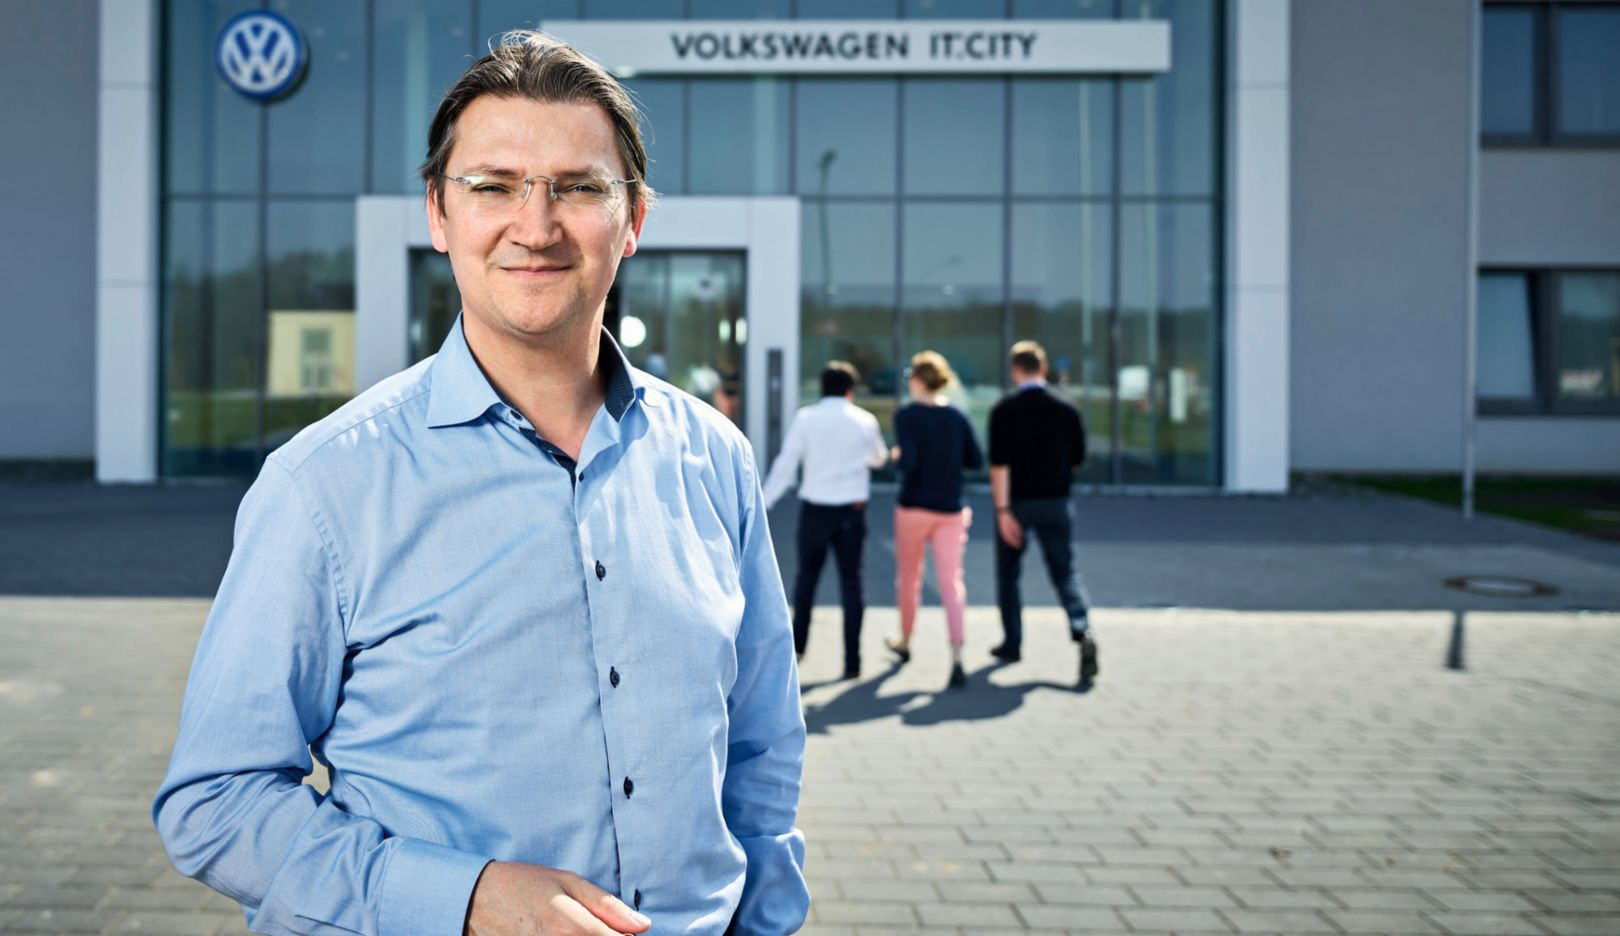 Interview with Johann Jungwirth, Head of Mobility Services at the Volkswagen Group, 2018, Porsche AG